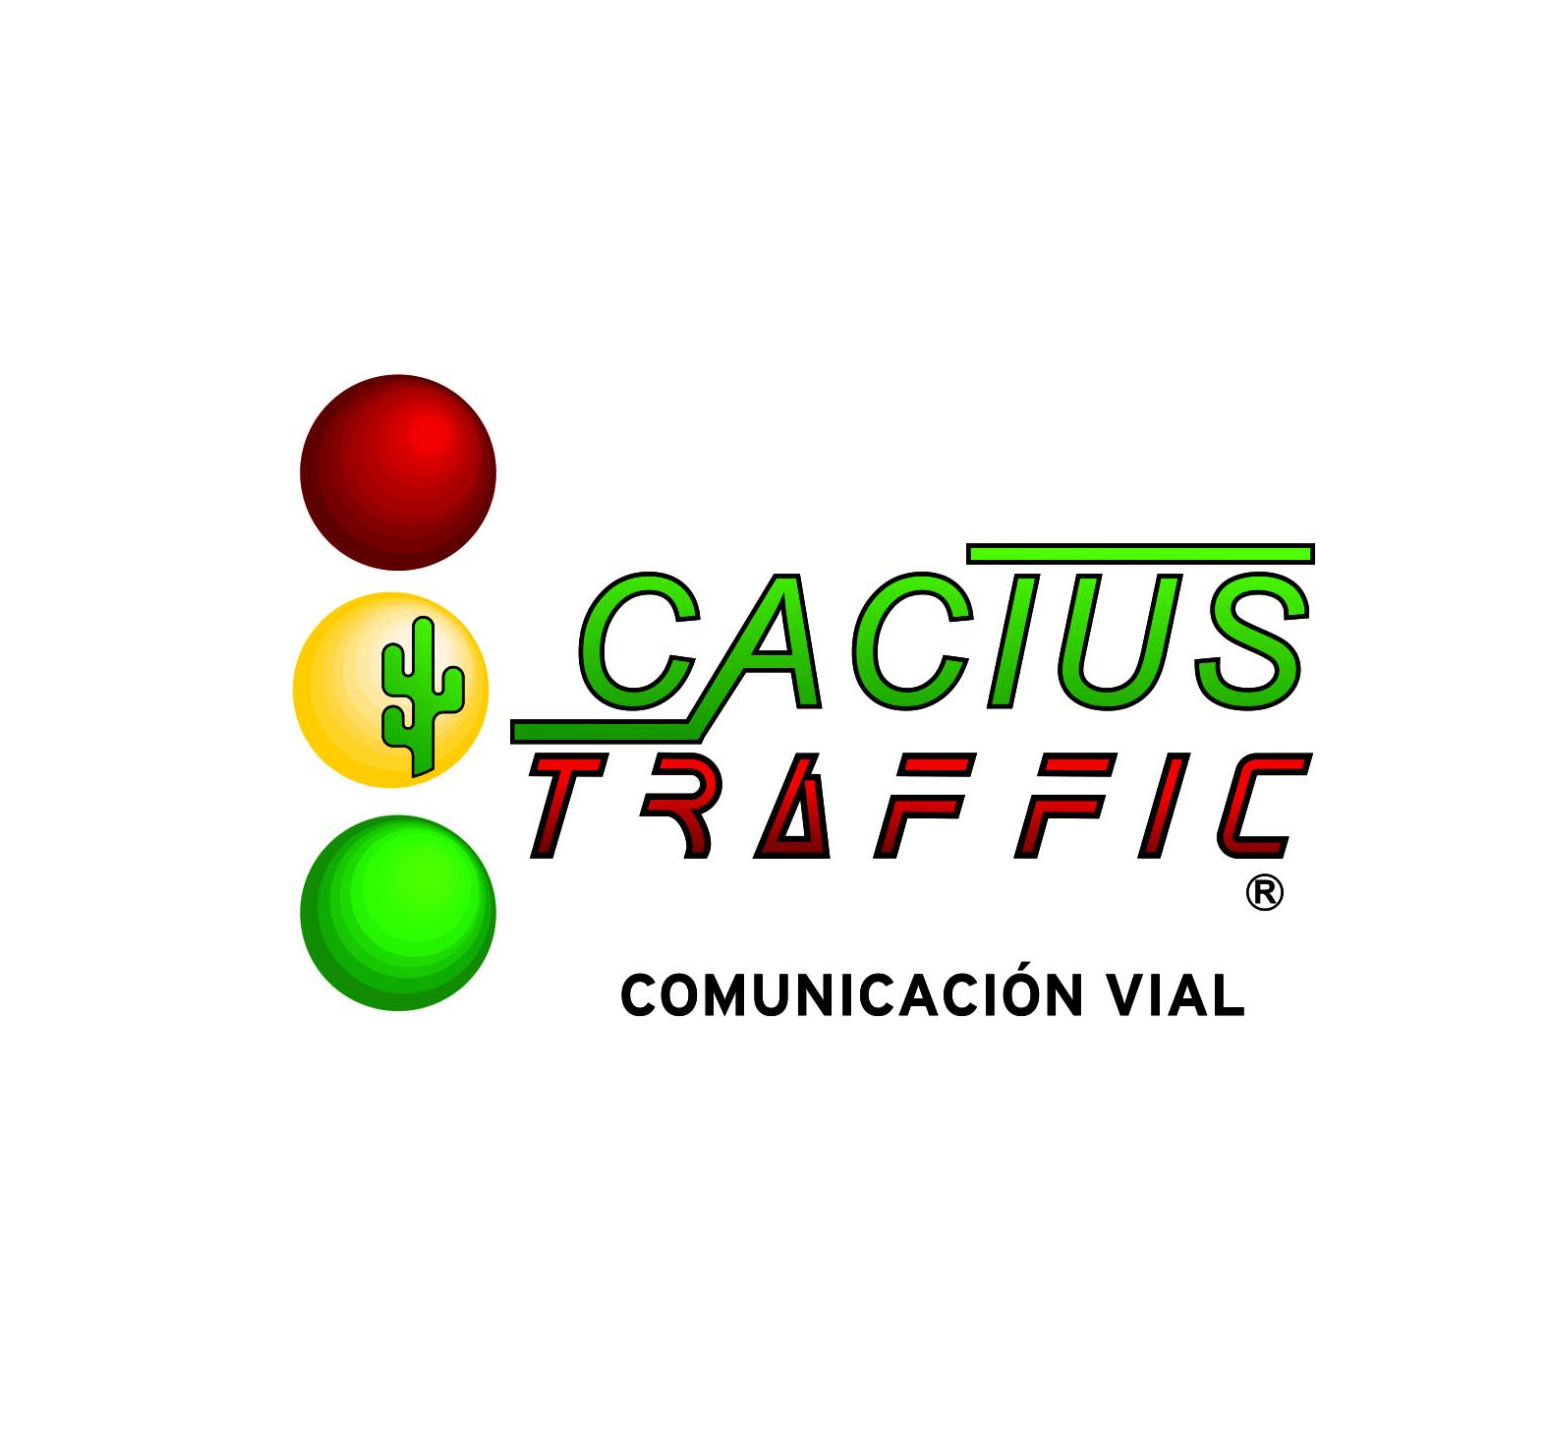 10-Cactus traffic